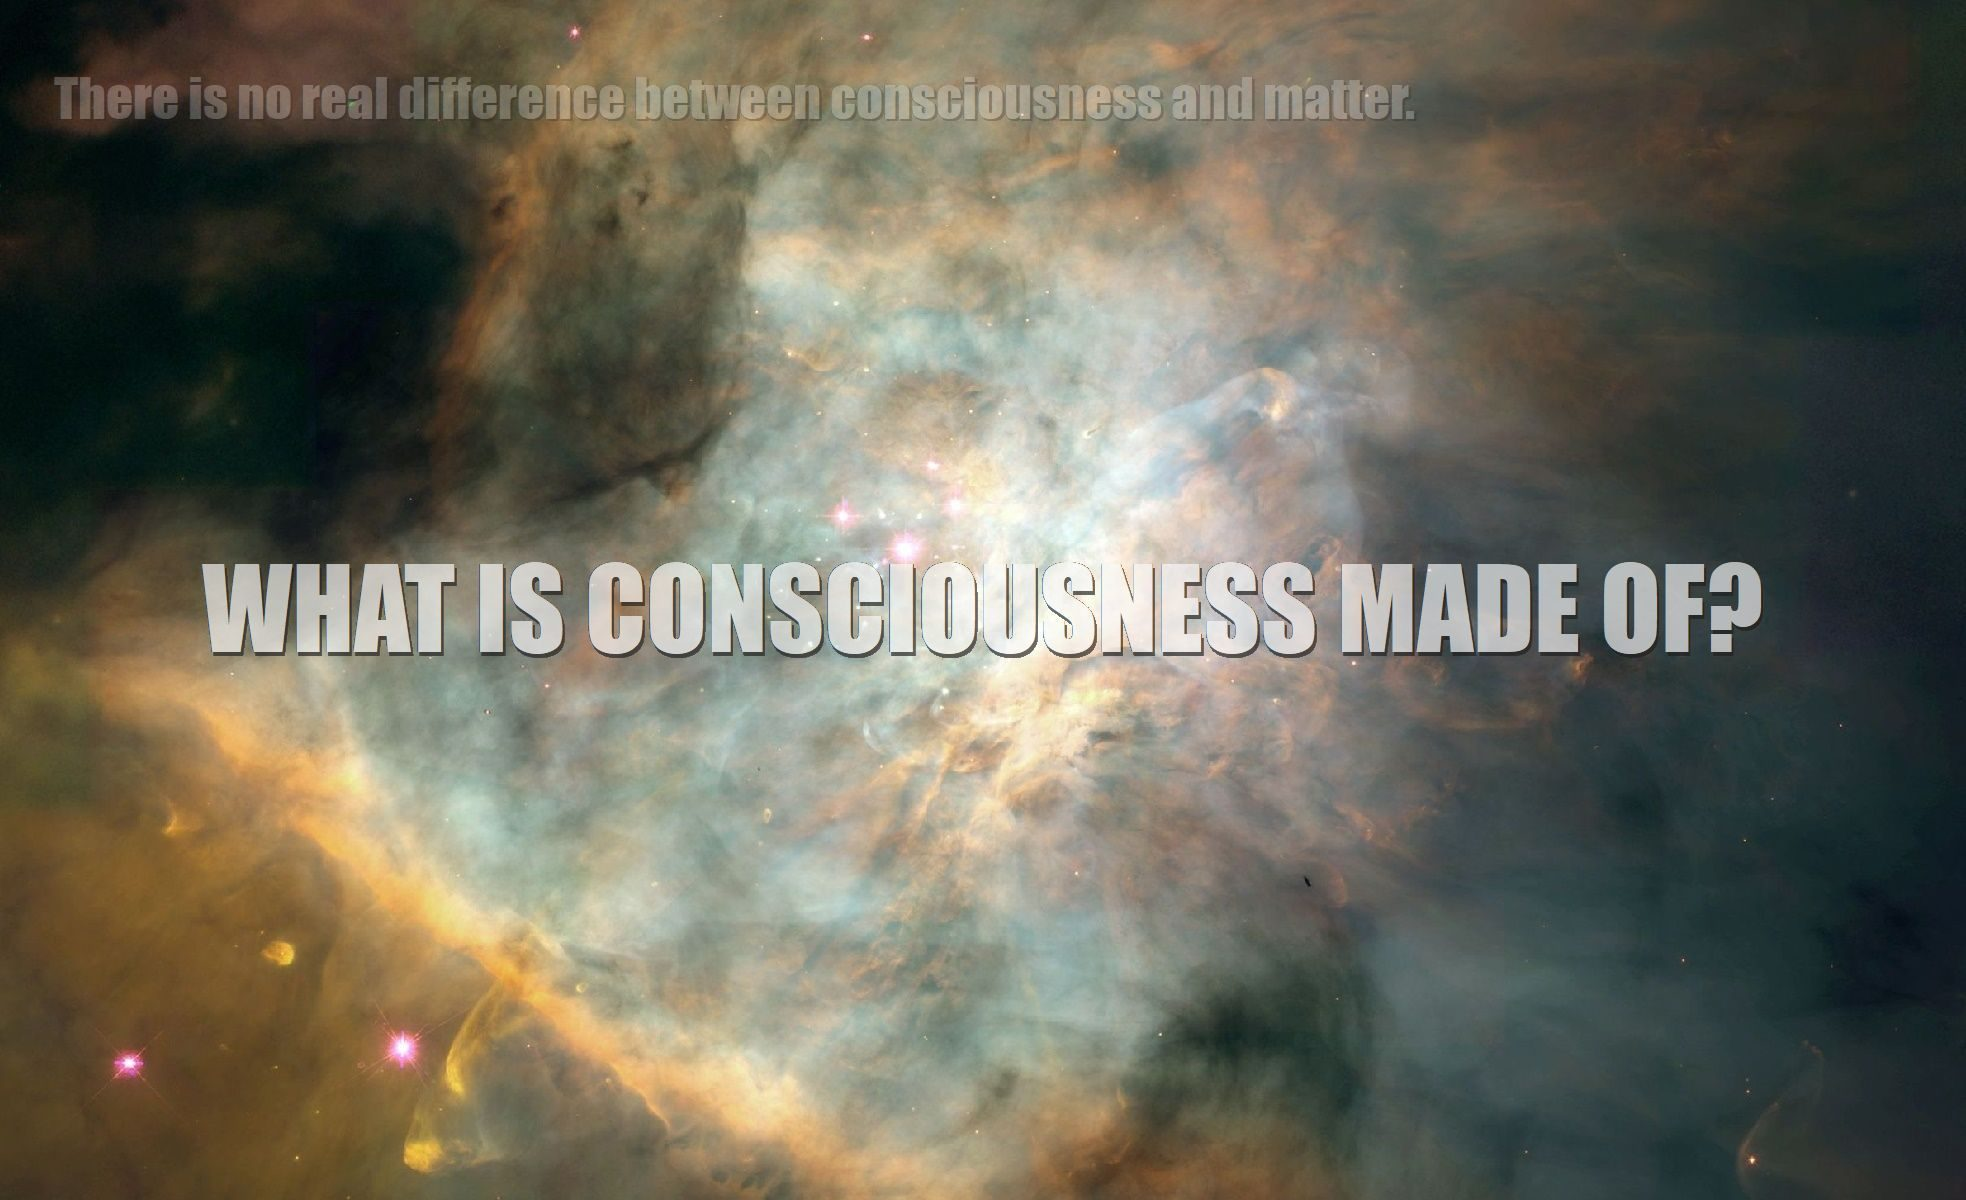 what-are-thoughts-consciousness-made-of-is-conscious-mind-physical-matter-electromagnetic-energy-reality-a-2000